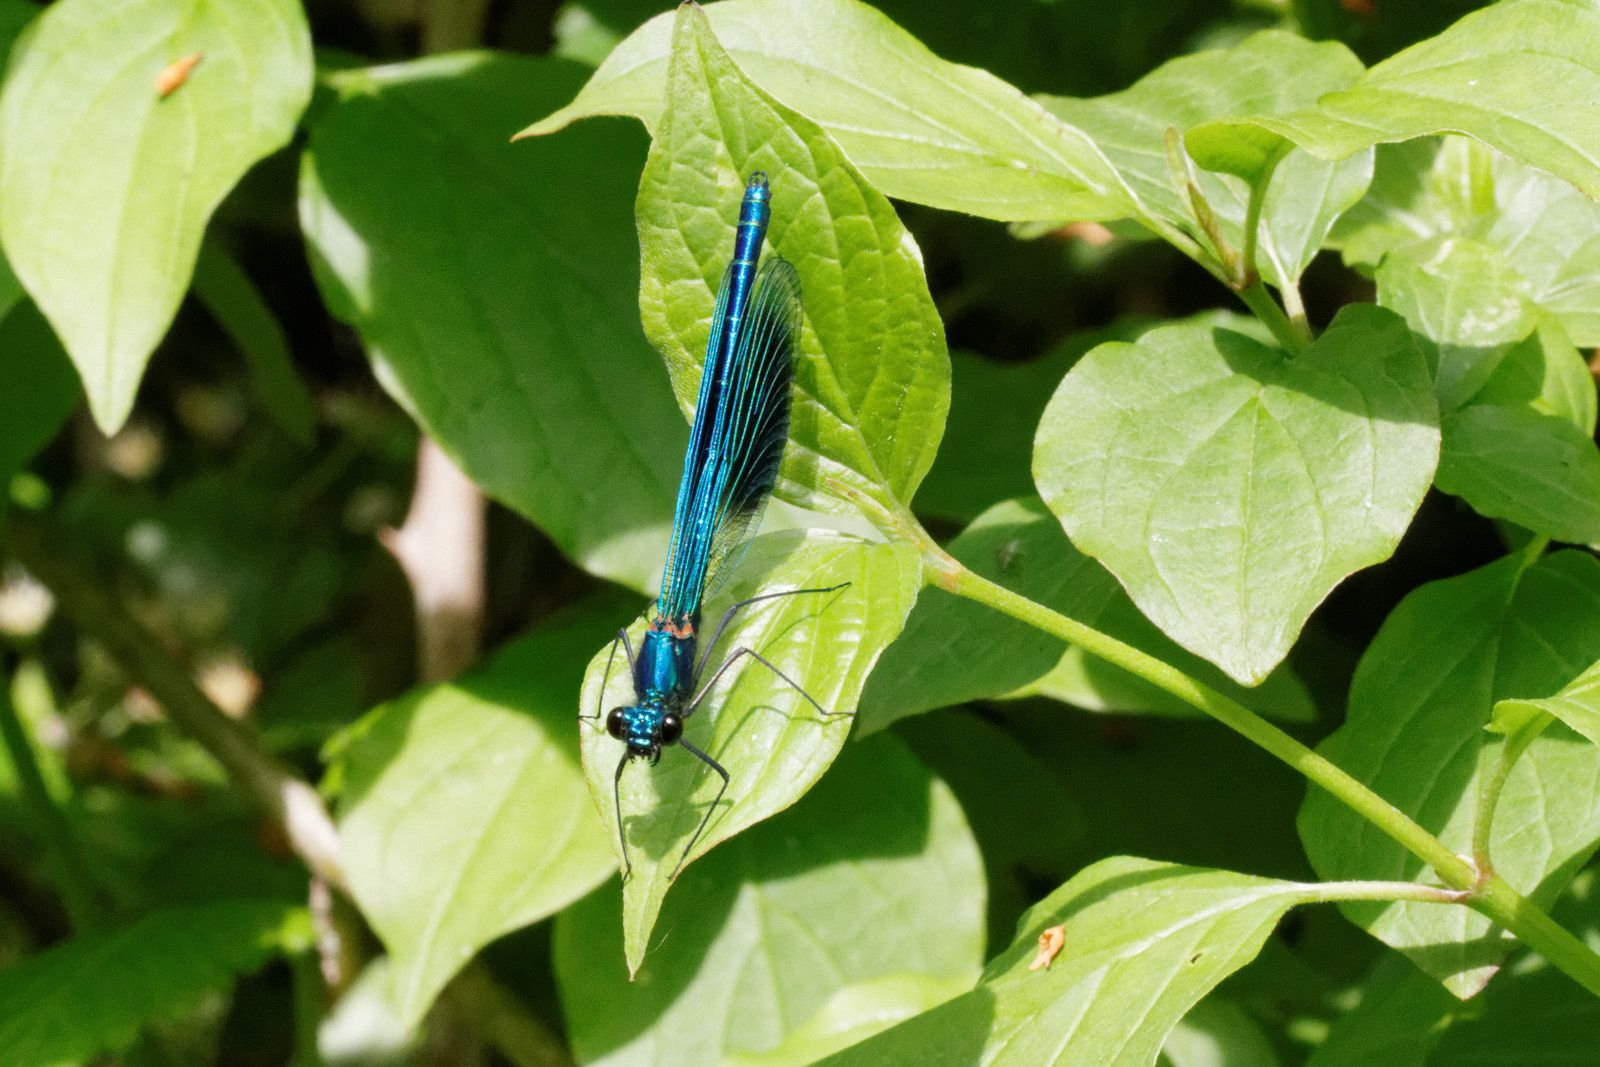 245 - Les Calopteryx vous accompagnent ! : 21/05/2016